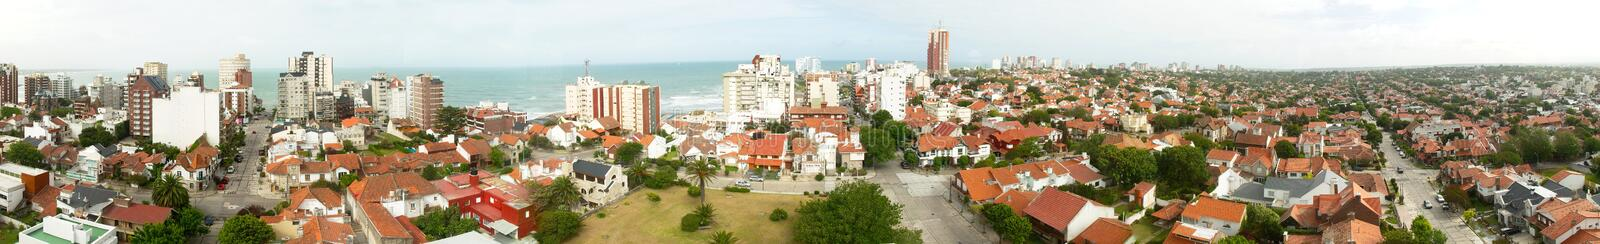 Residential area by the sea in Mar del Plata, Argentina. Panoramic view of a residential area by the sea. Mar del Plata, Buenos Aires, Argentina royalty free stock photo